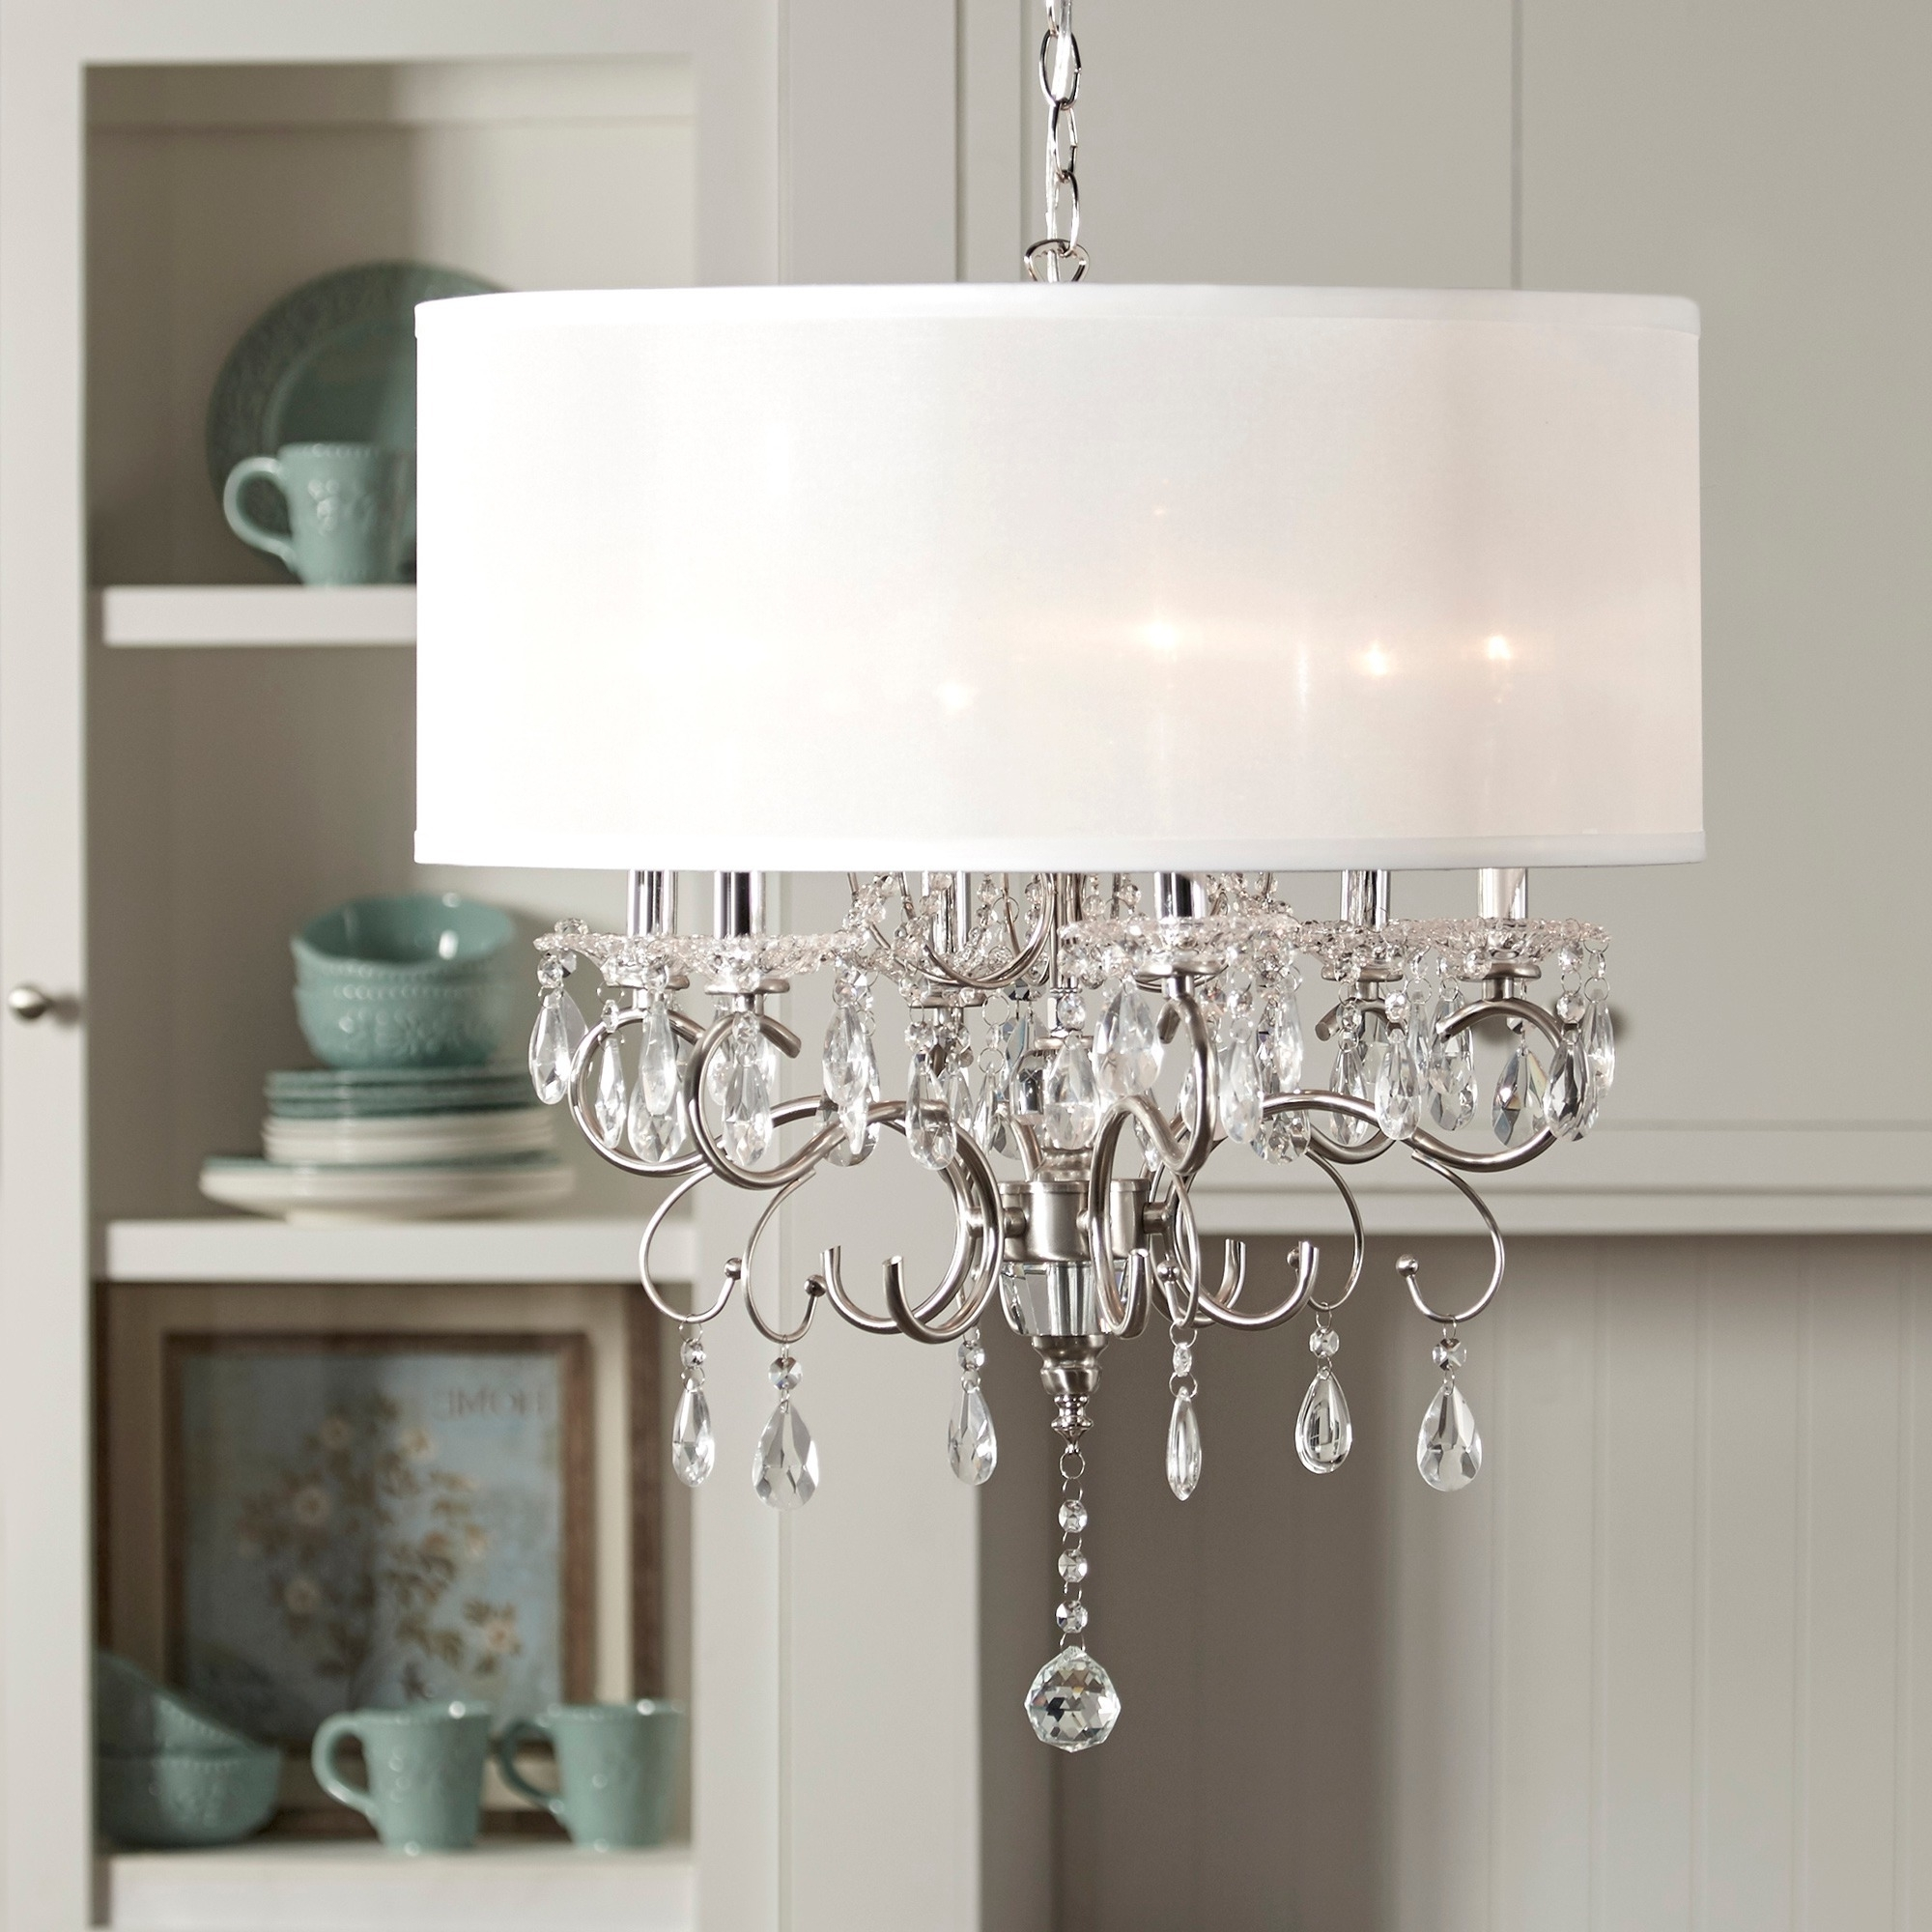 Lighting: Crystal Drum Light Pendant With Wall Mount Shelves For Inside Well Liked Wall Mounted Chandelier Lighting (View 10 of 20)